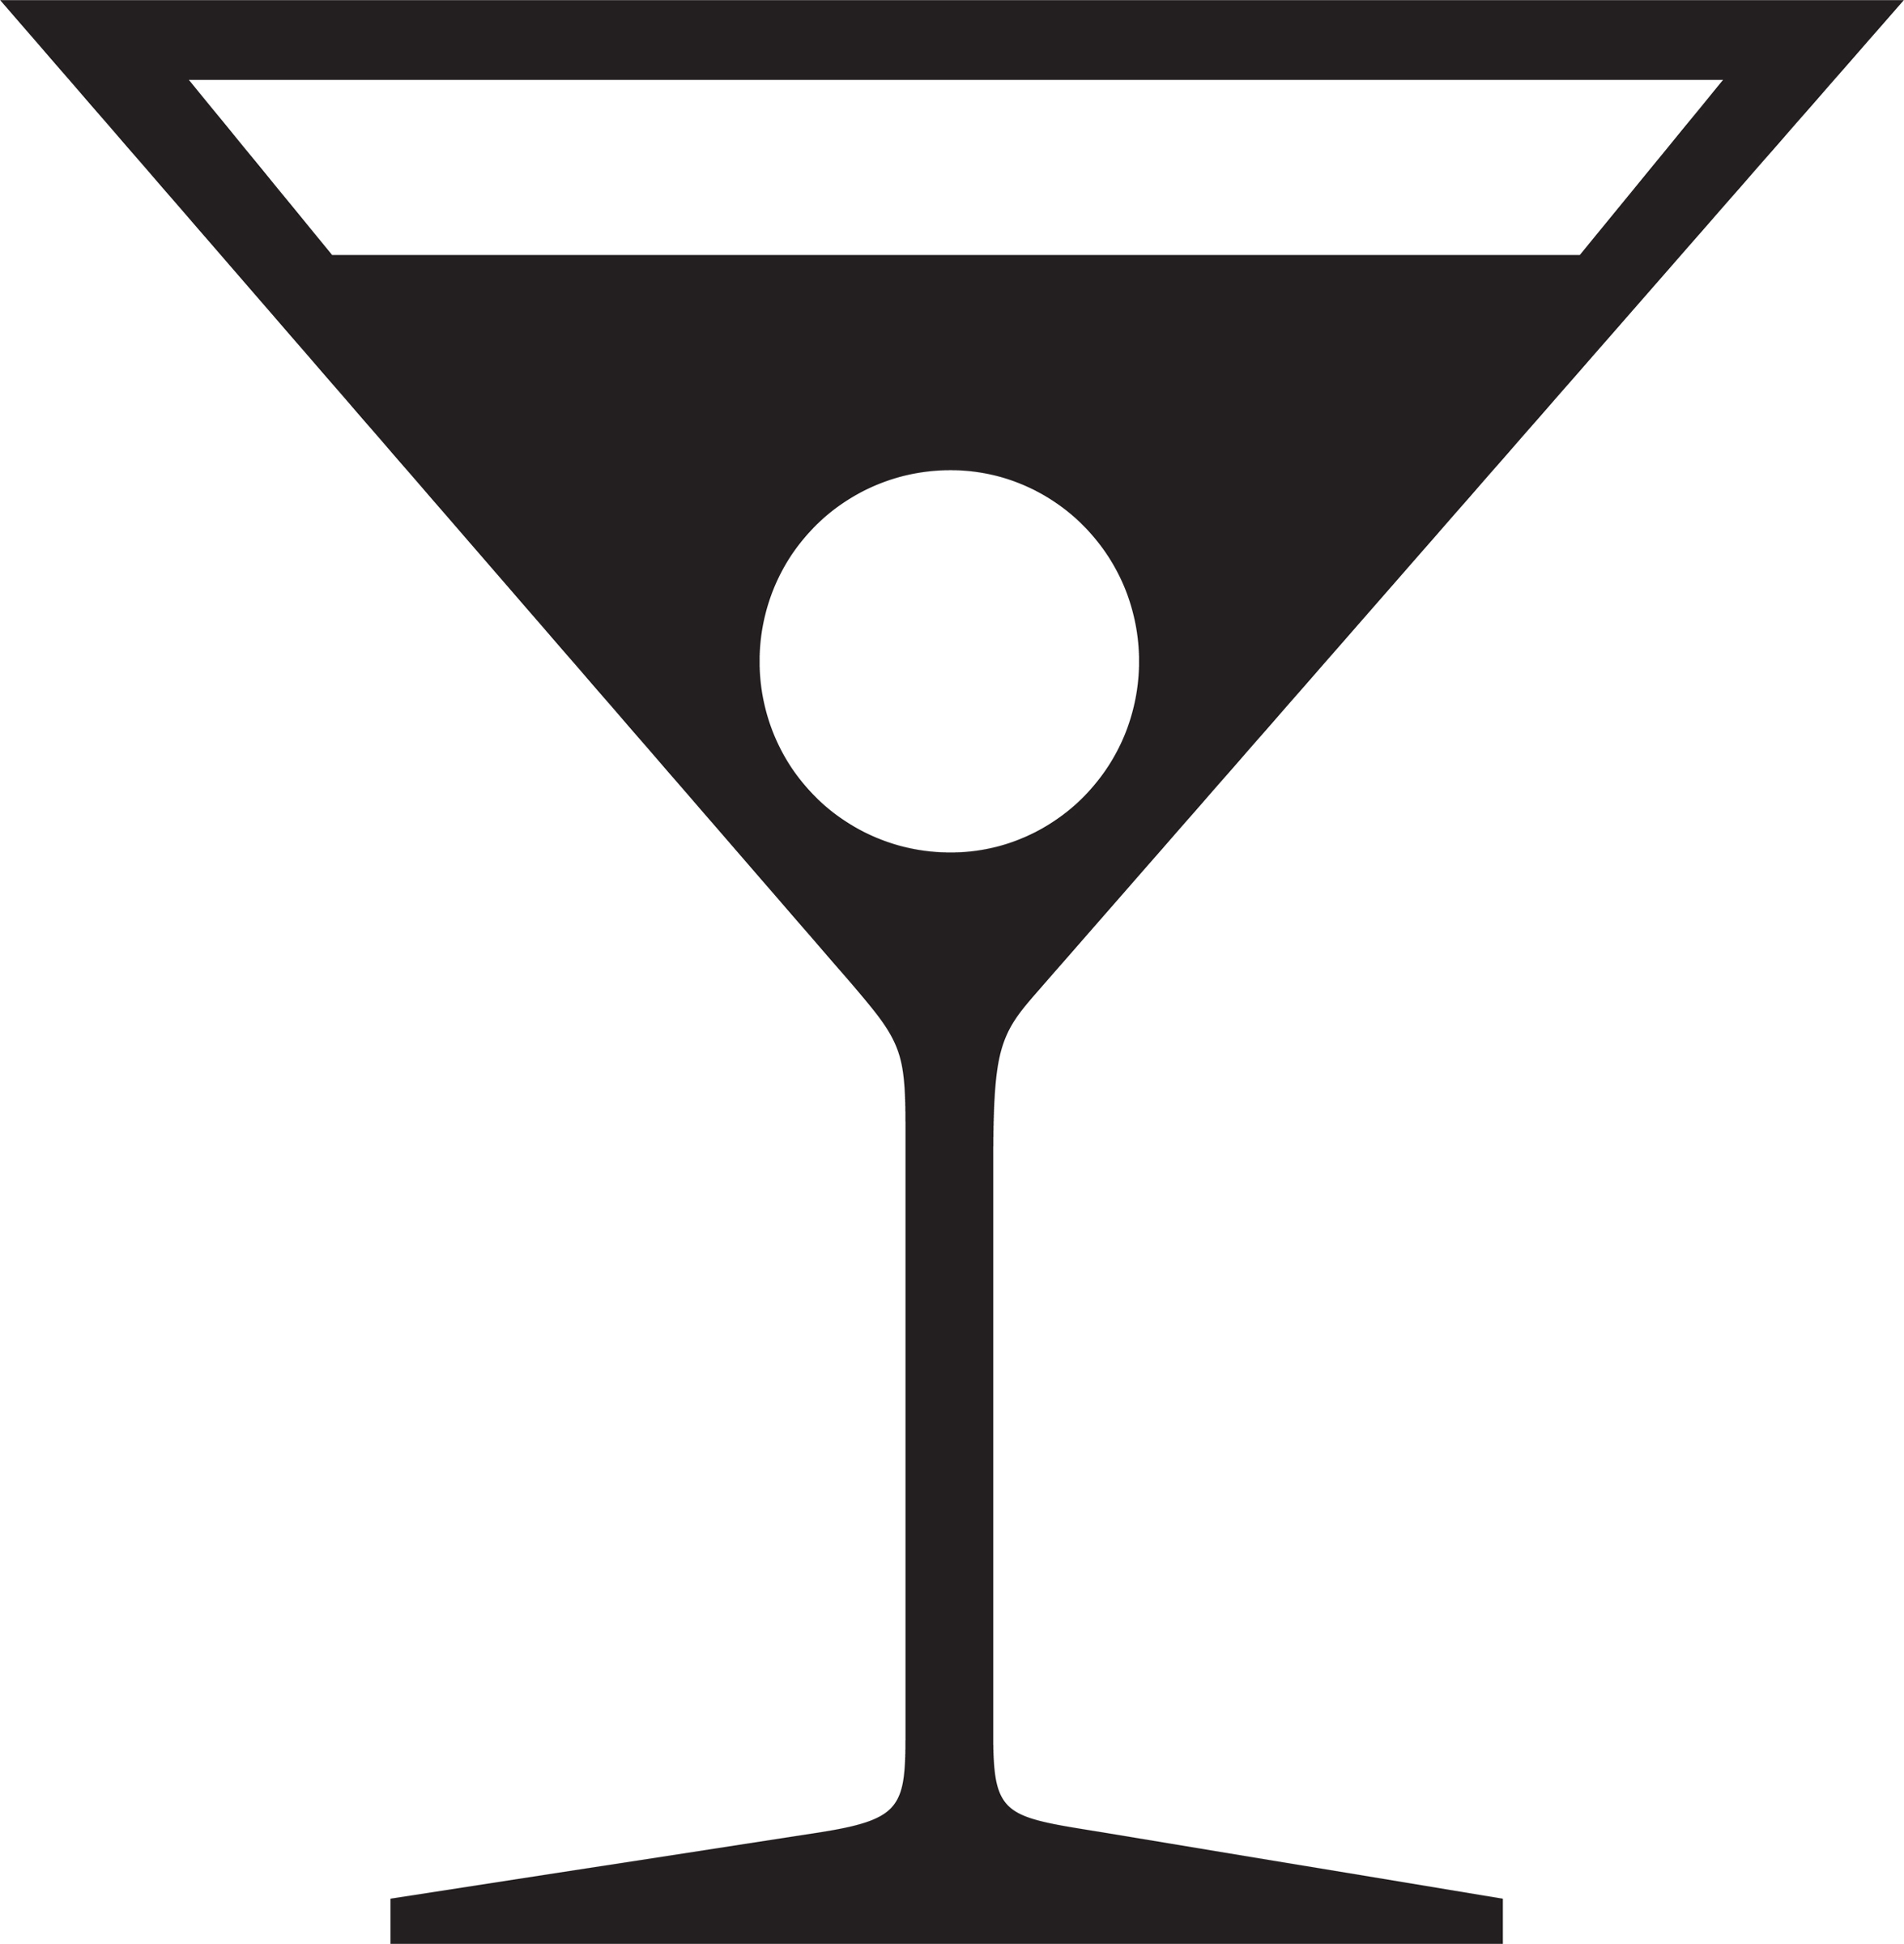 Martini glass cocktail glass clip art vector free clipart image